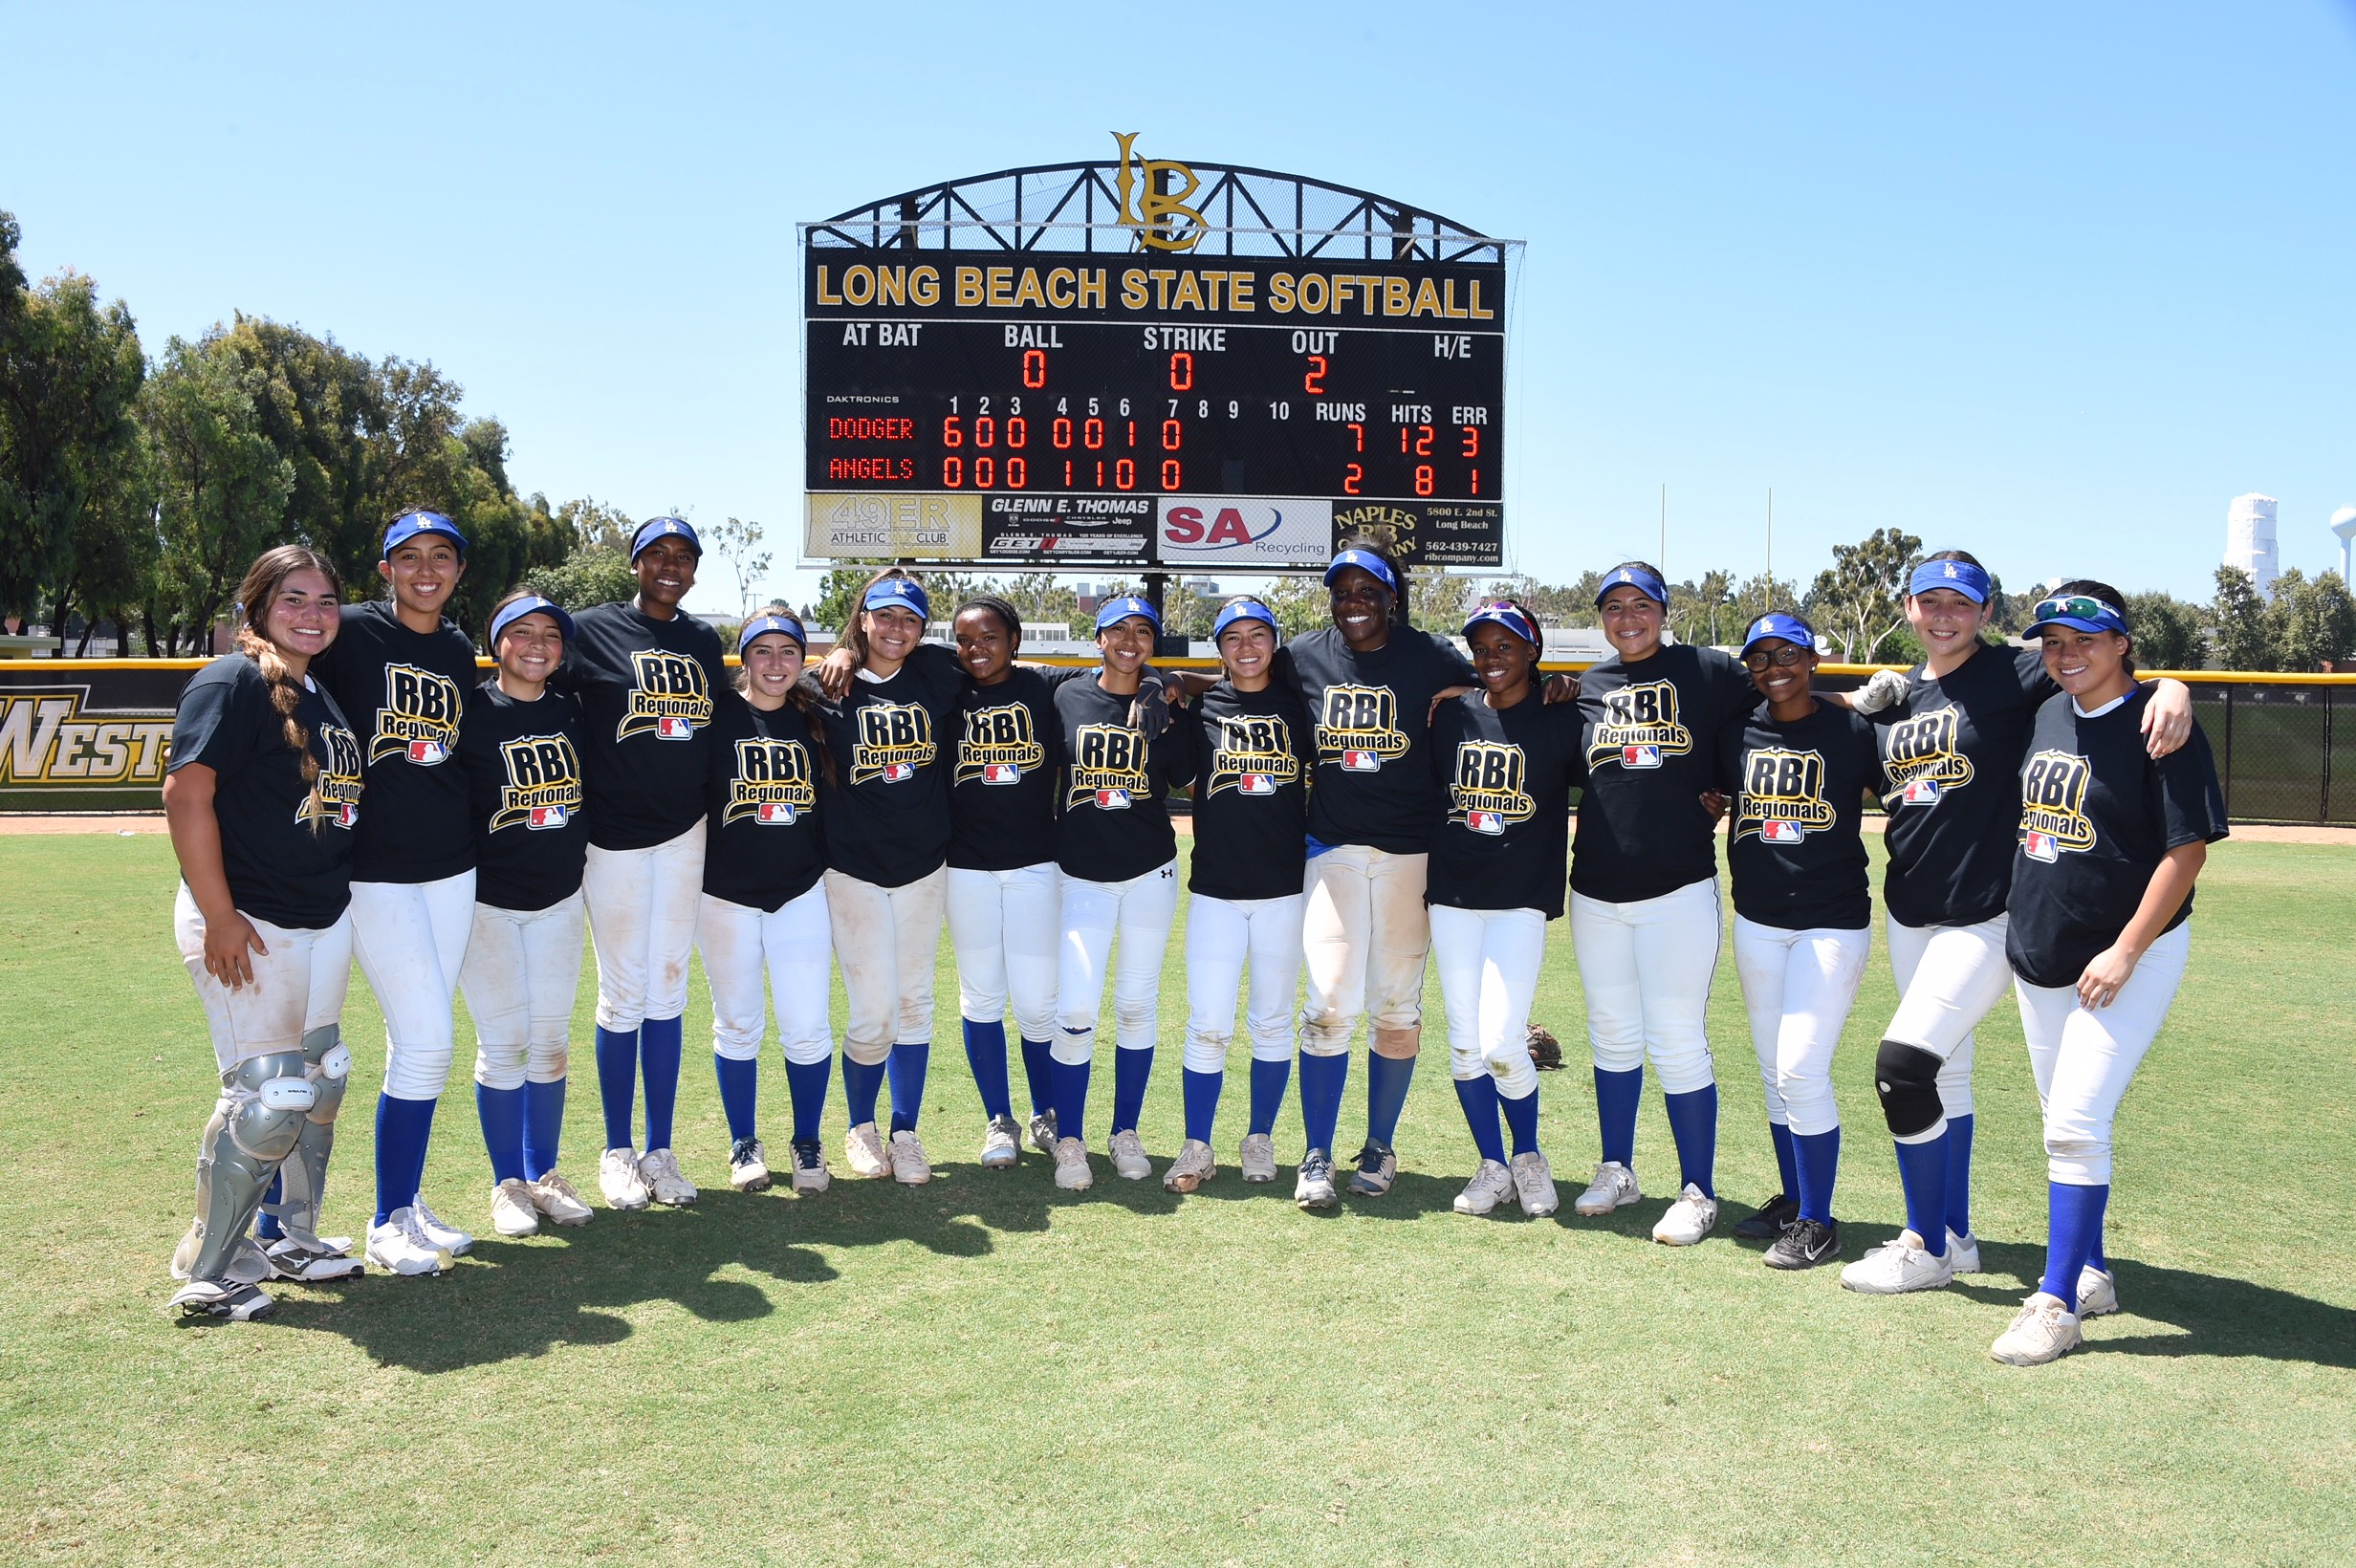 LADF: Los Angeles Dodgers Foundation Hosts MLB RBI West